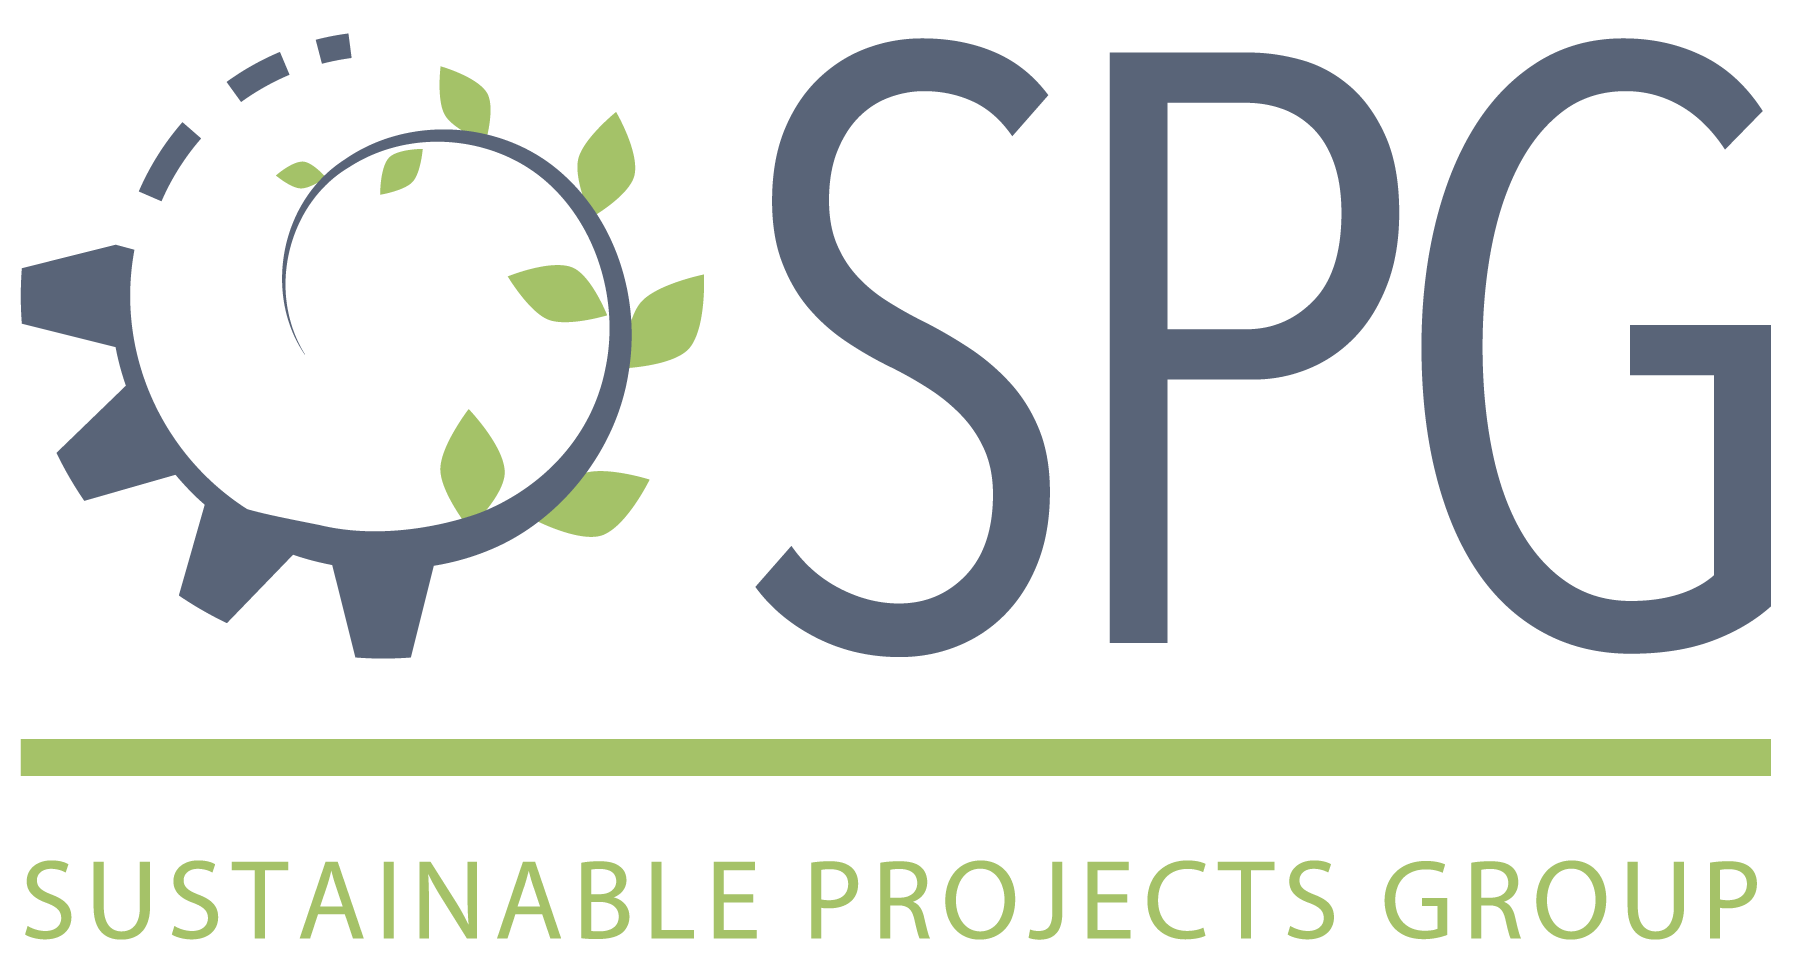 Sustainable Projects Group